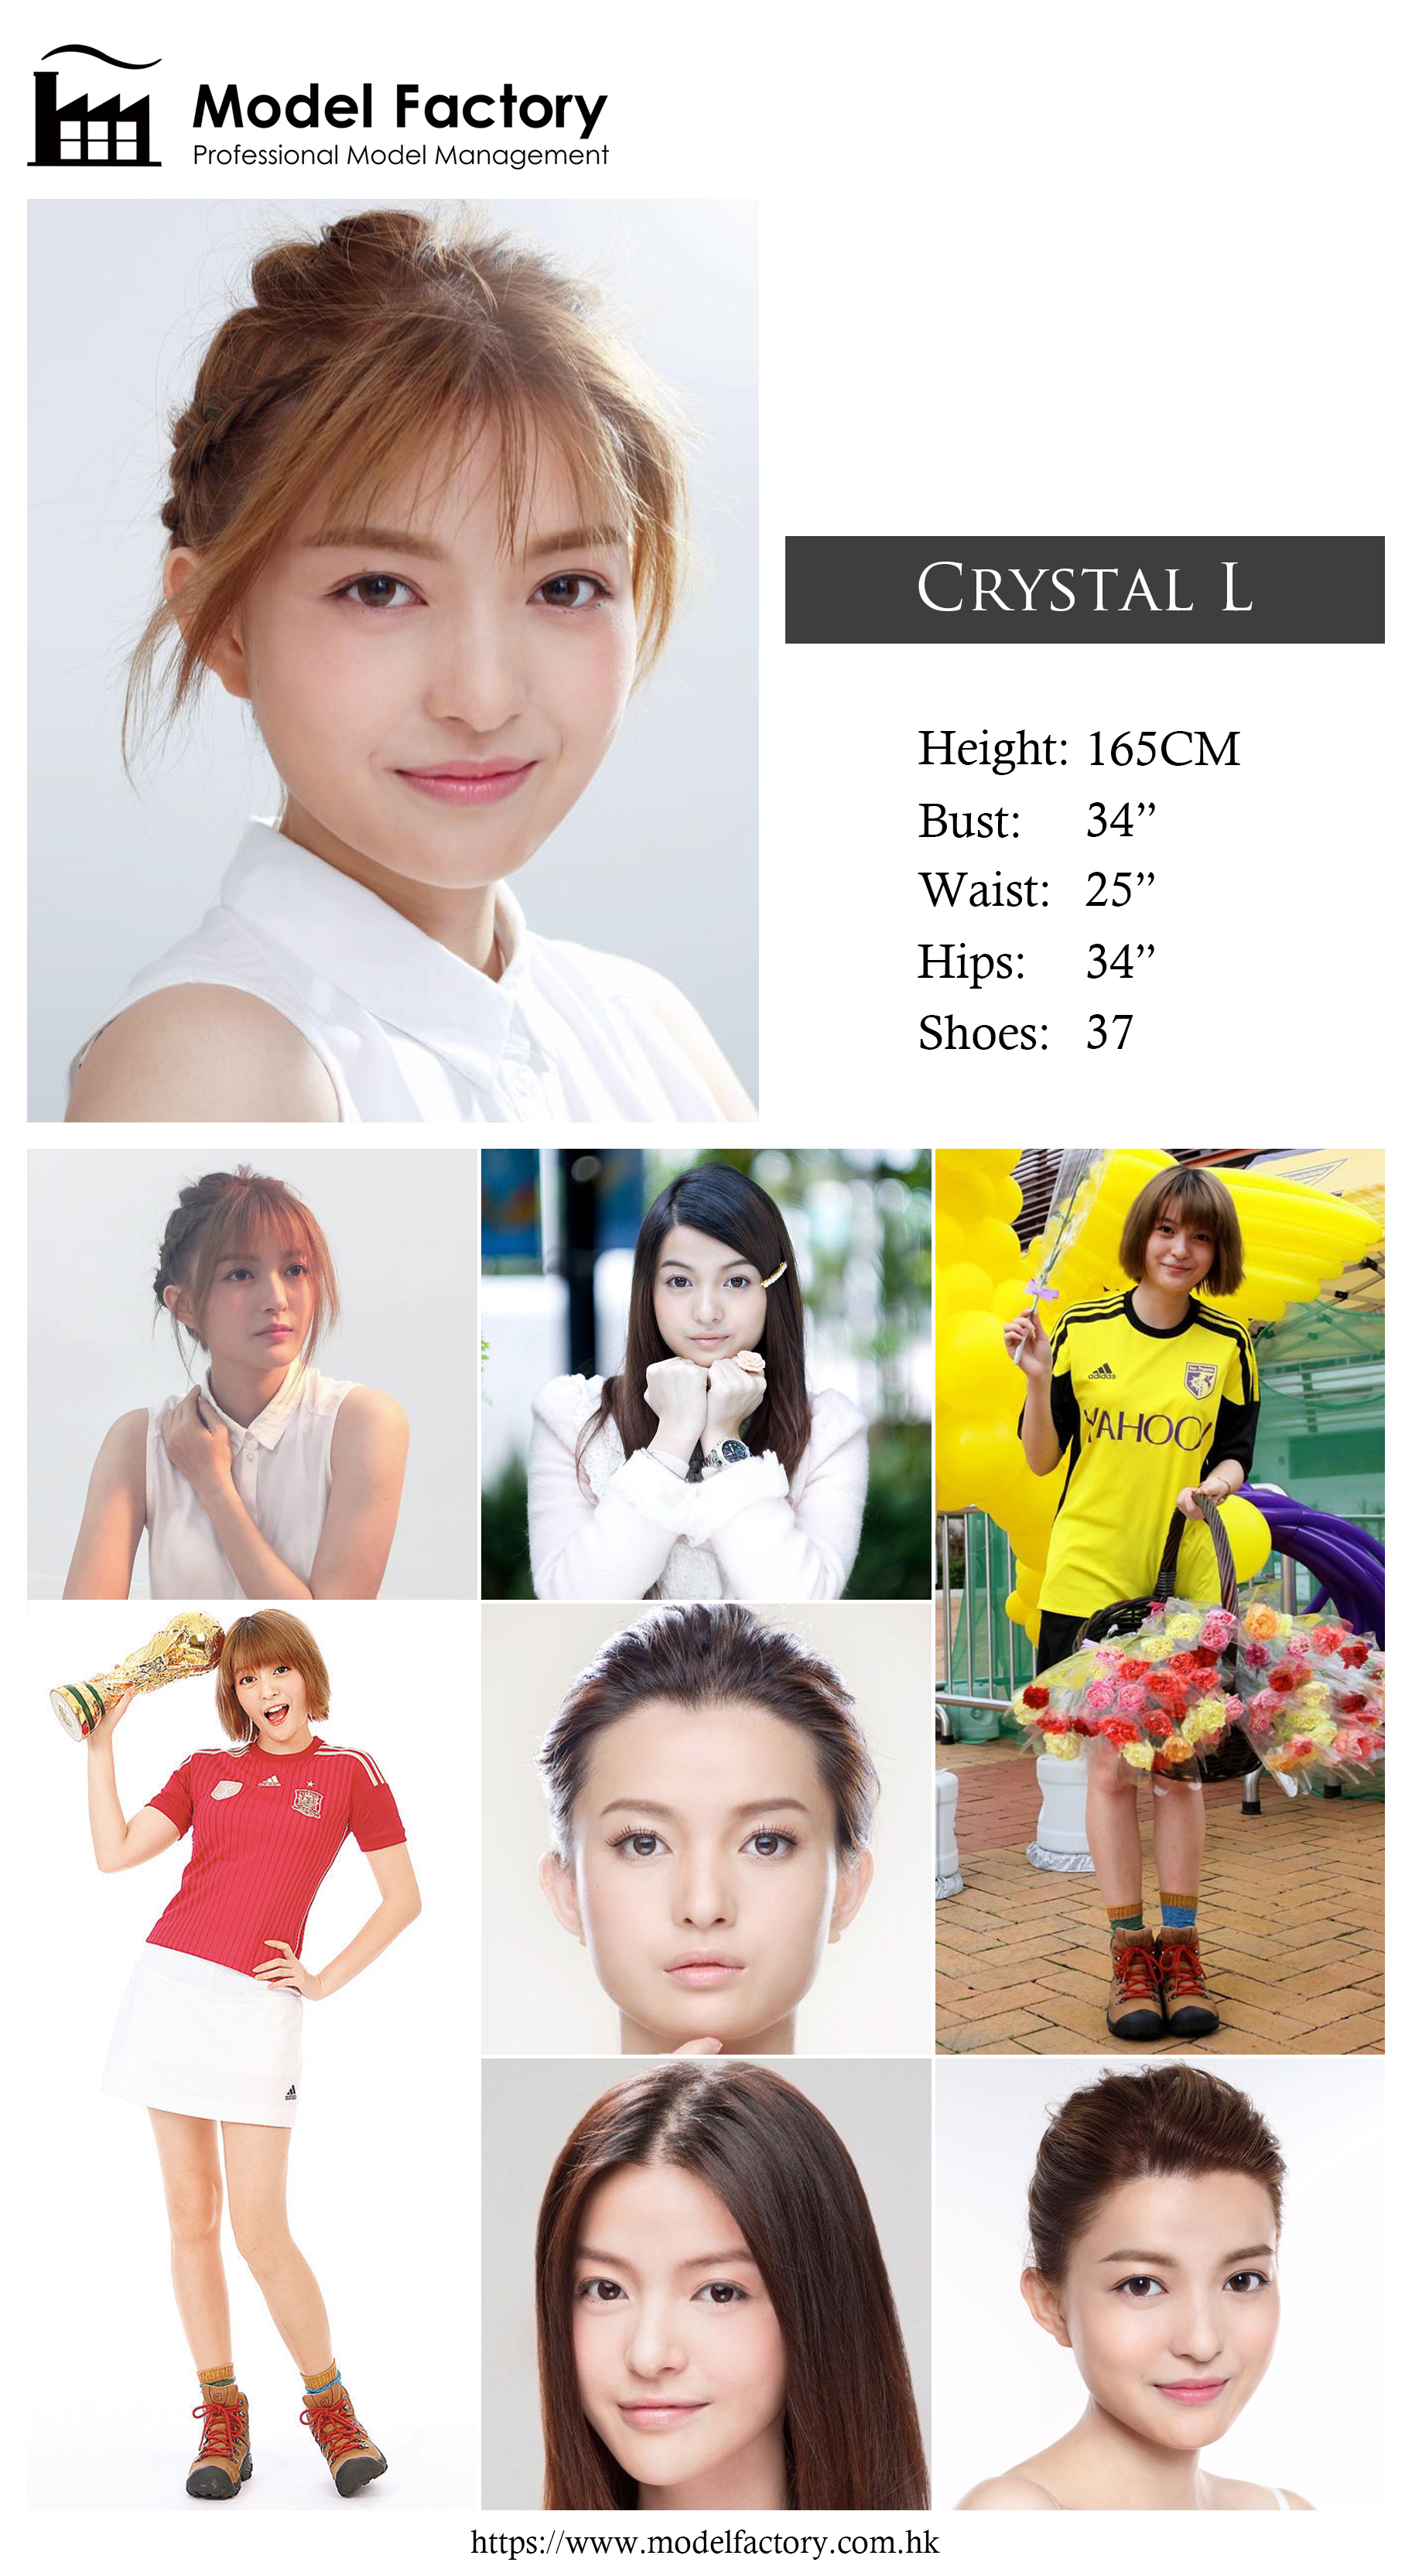 Model Factory Hong Kong Female Model CrystalL